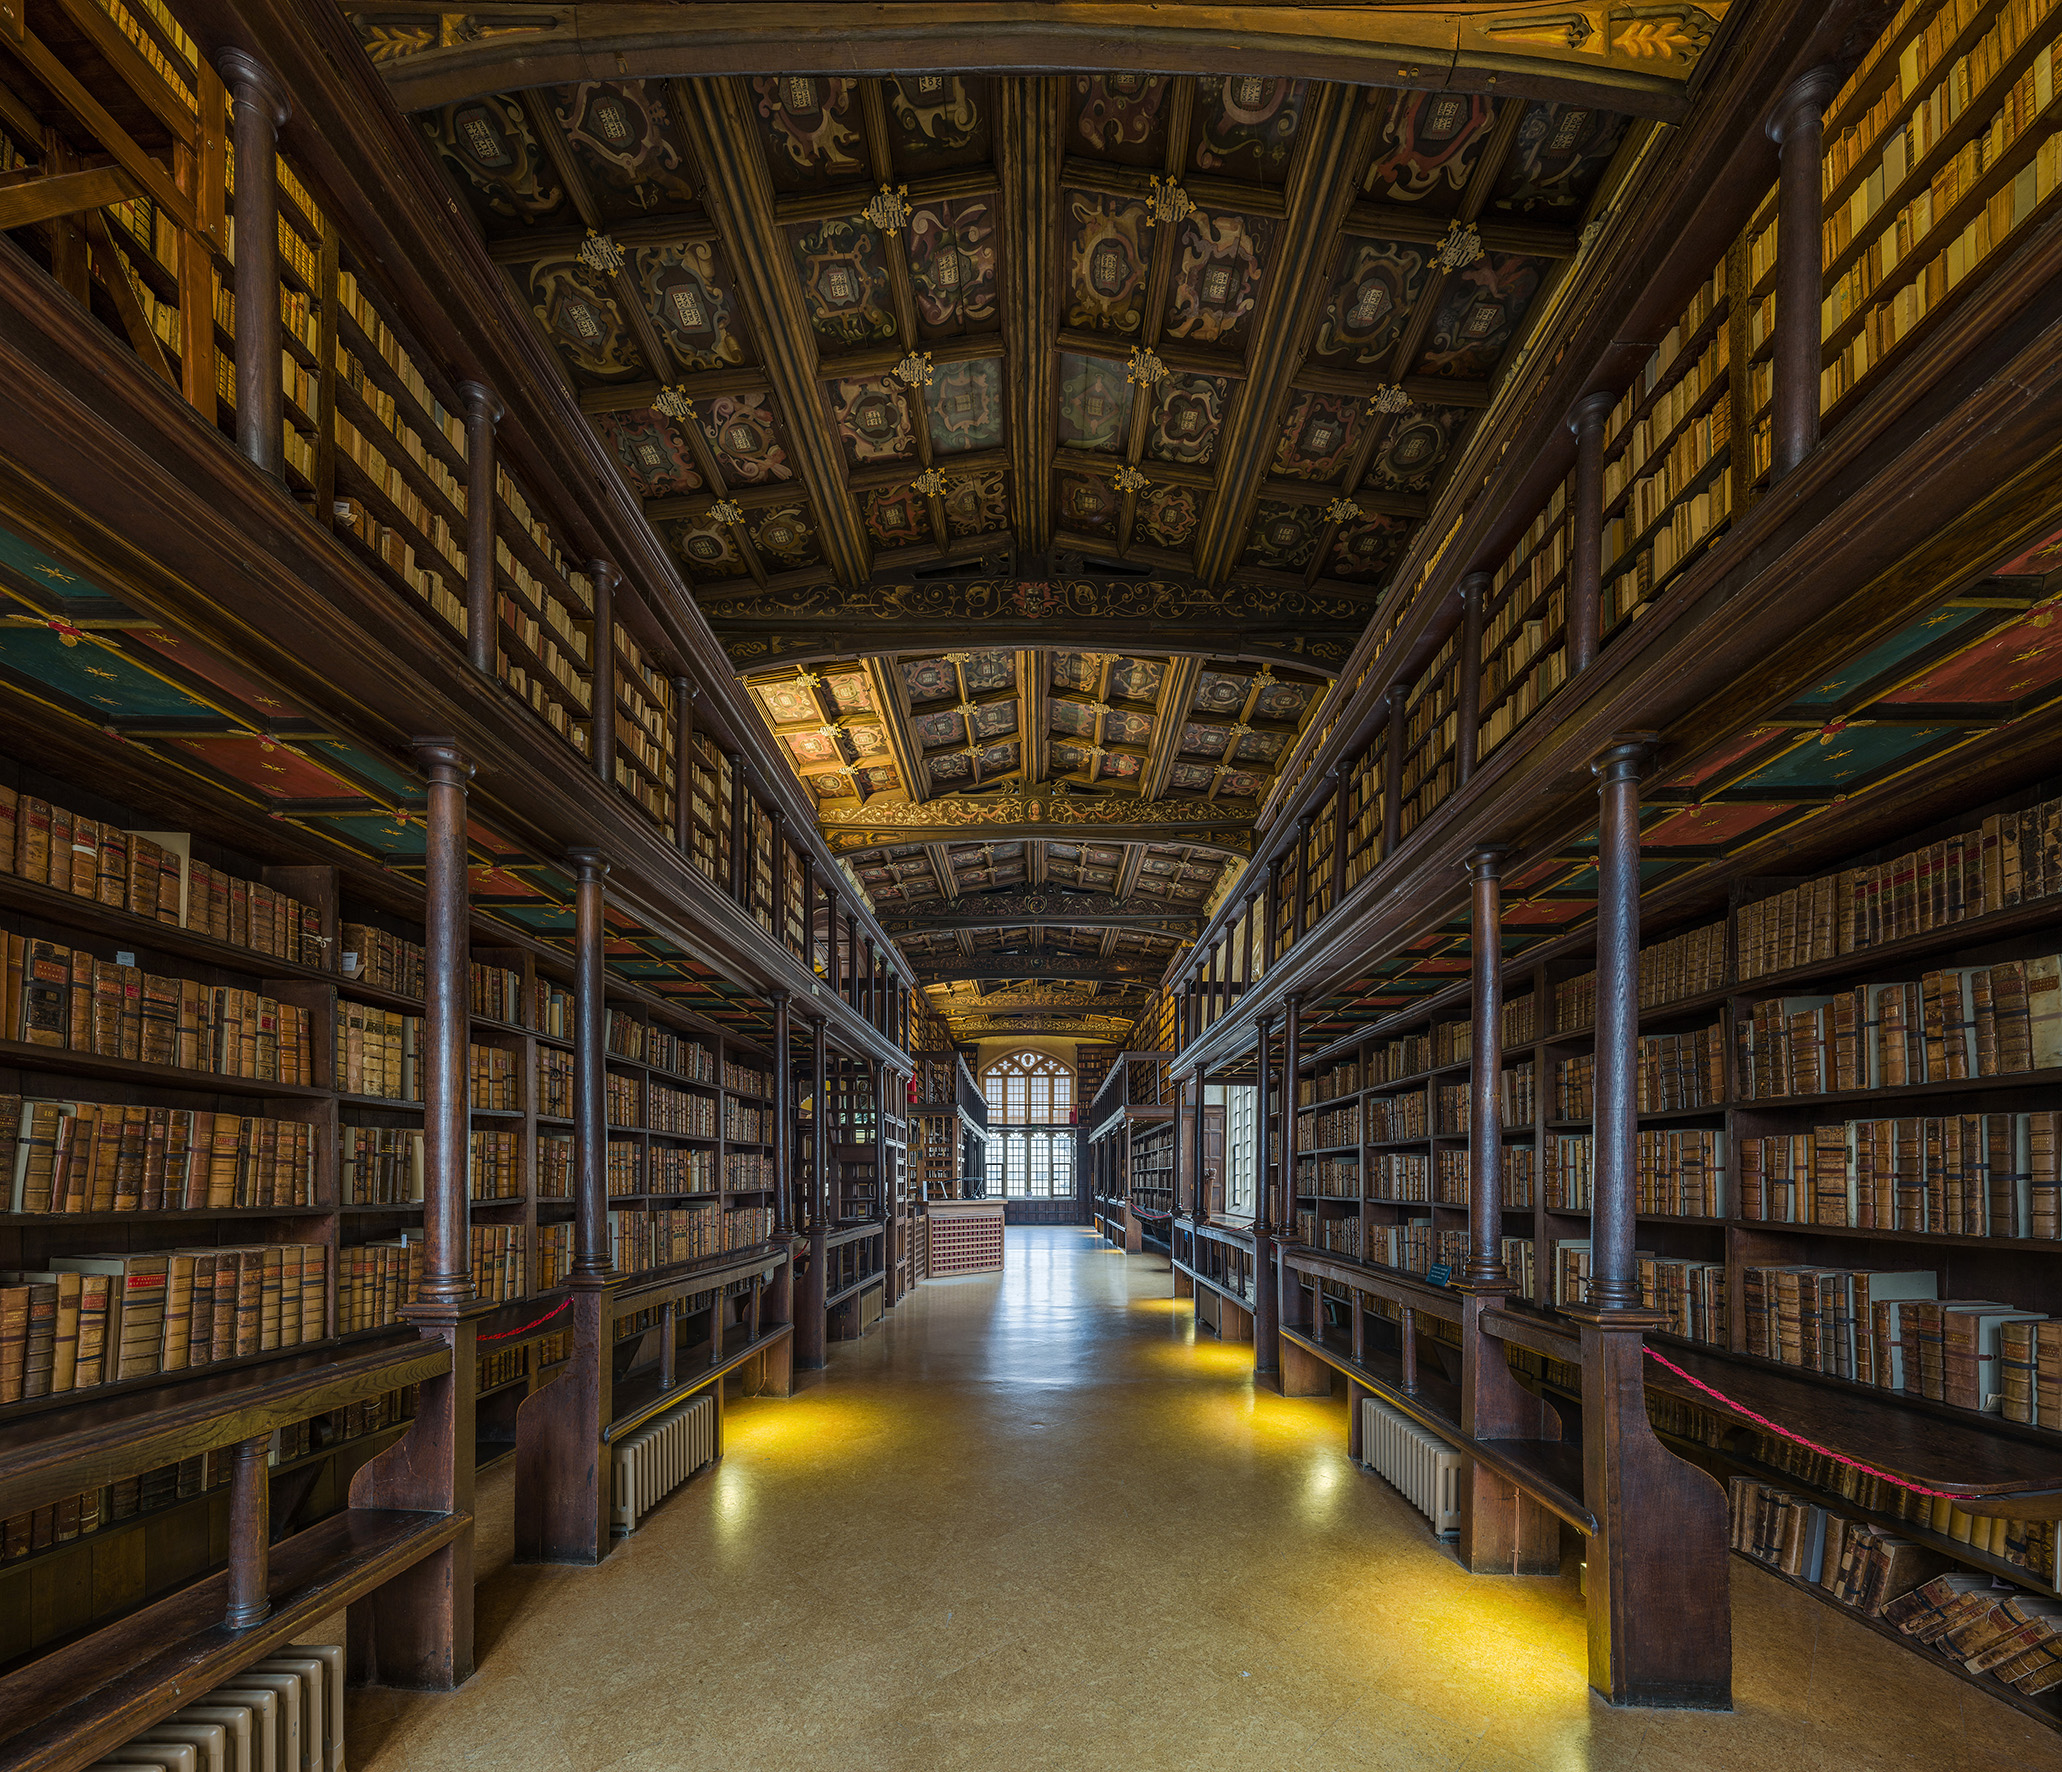 Duke_Humfrey%27s_Library_Interior_2%2C_Bodleian_Library%2C_Oxford%2C_UK_-_Diliff.jpg